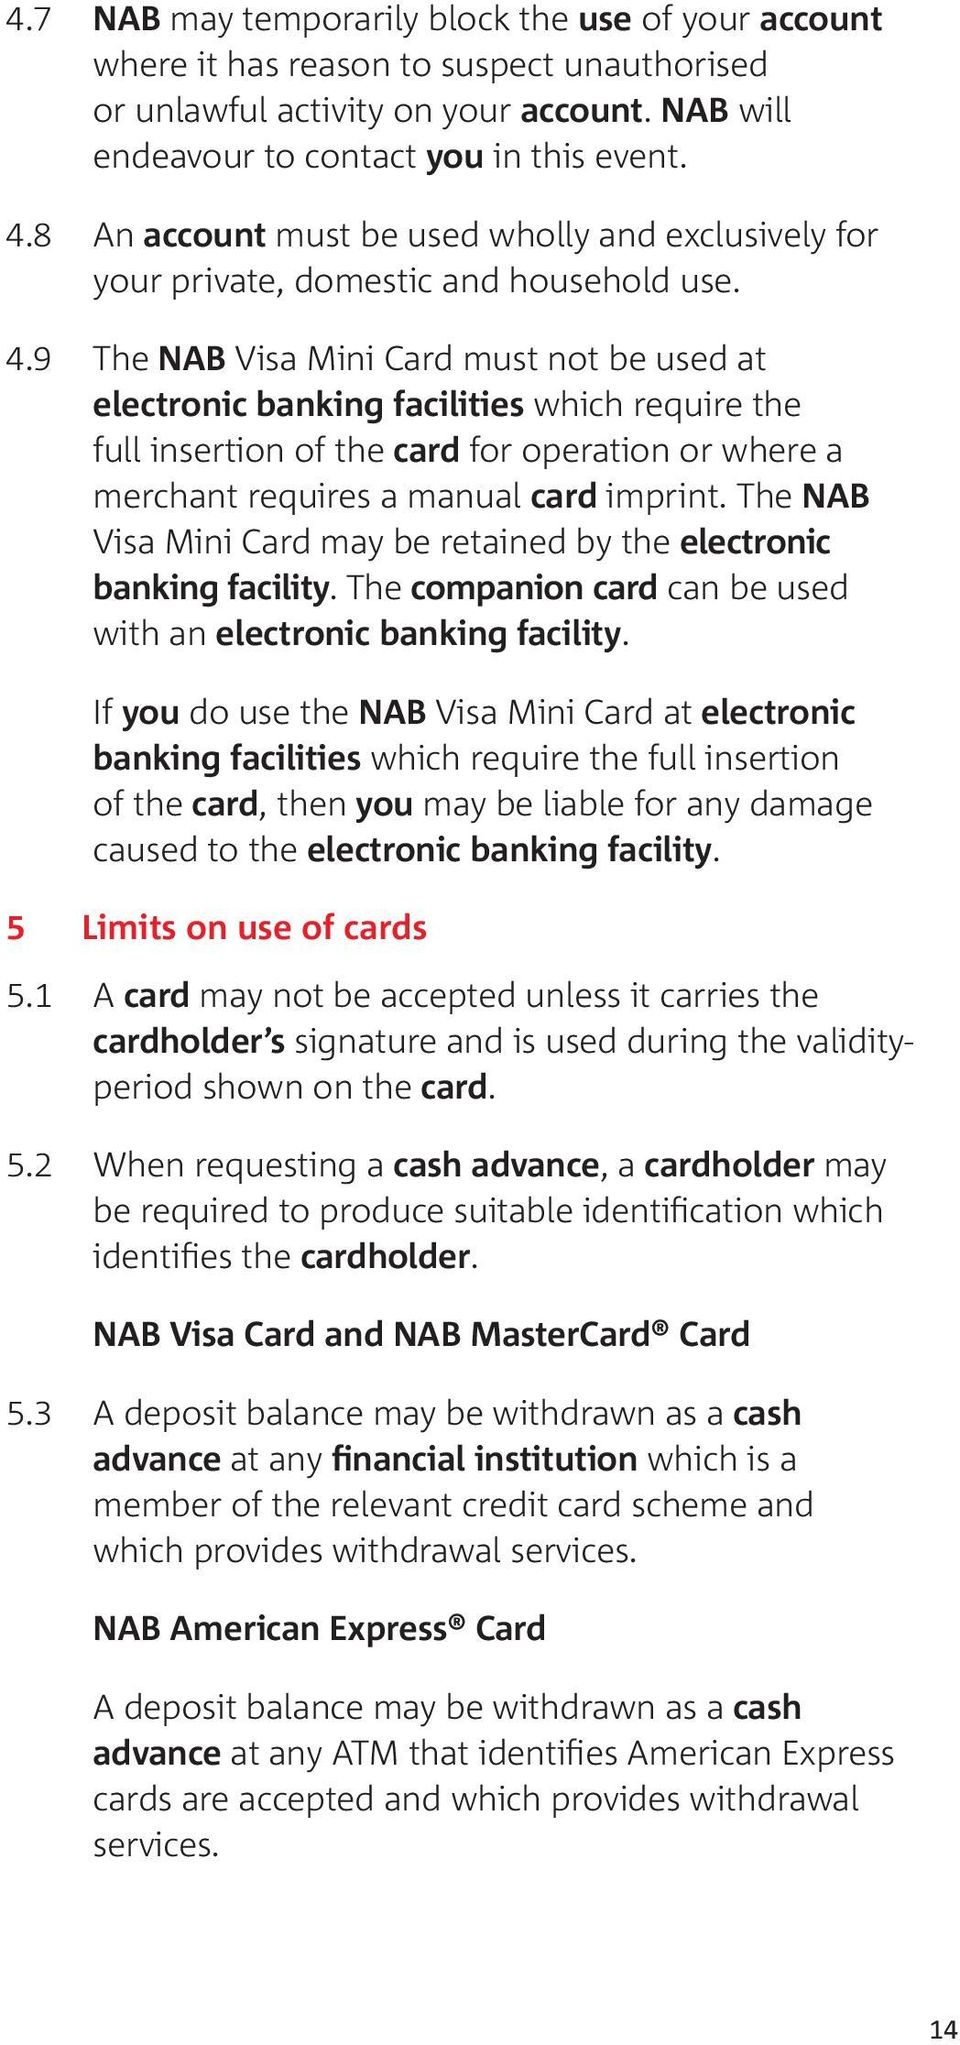 9 The NAB Visa Mini Card must not be used at electronic banking facilities which require the full insertion of the card for operation or where a merchant requires a manual card imprint.